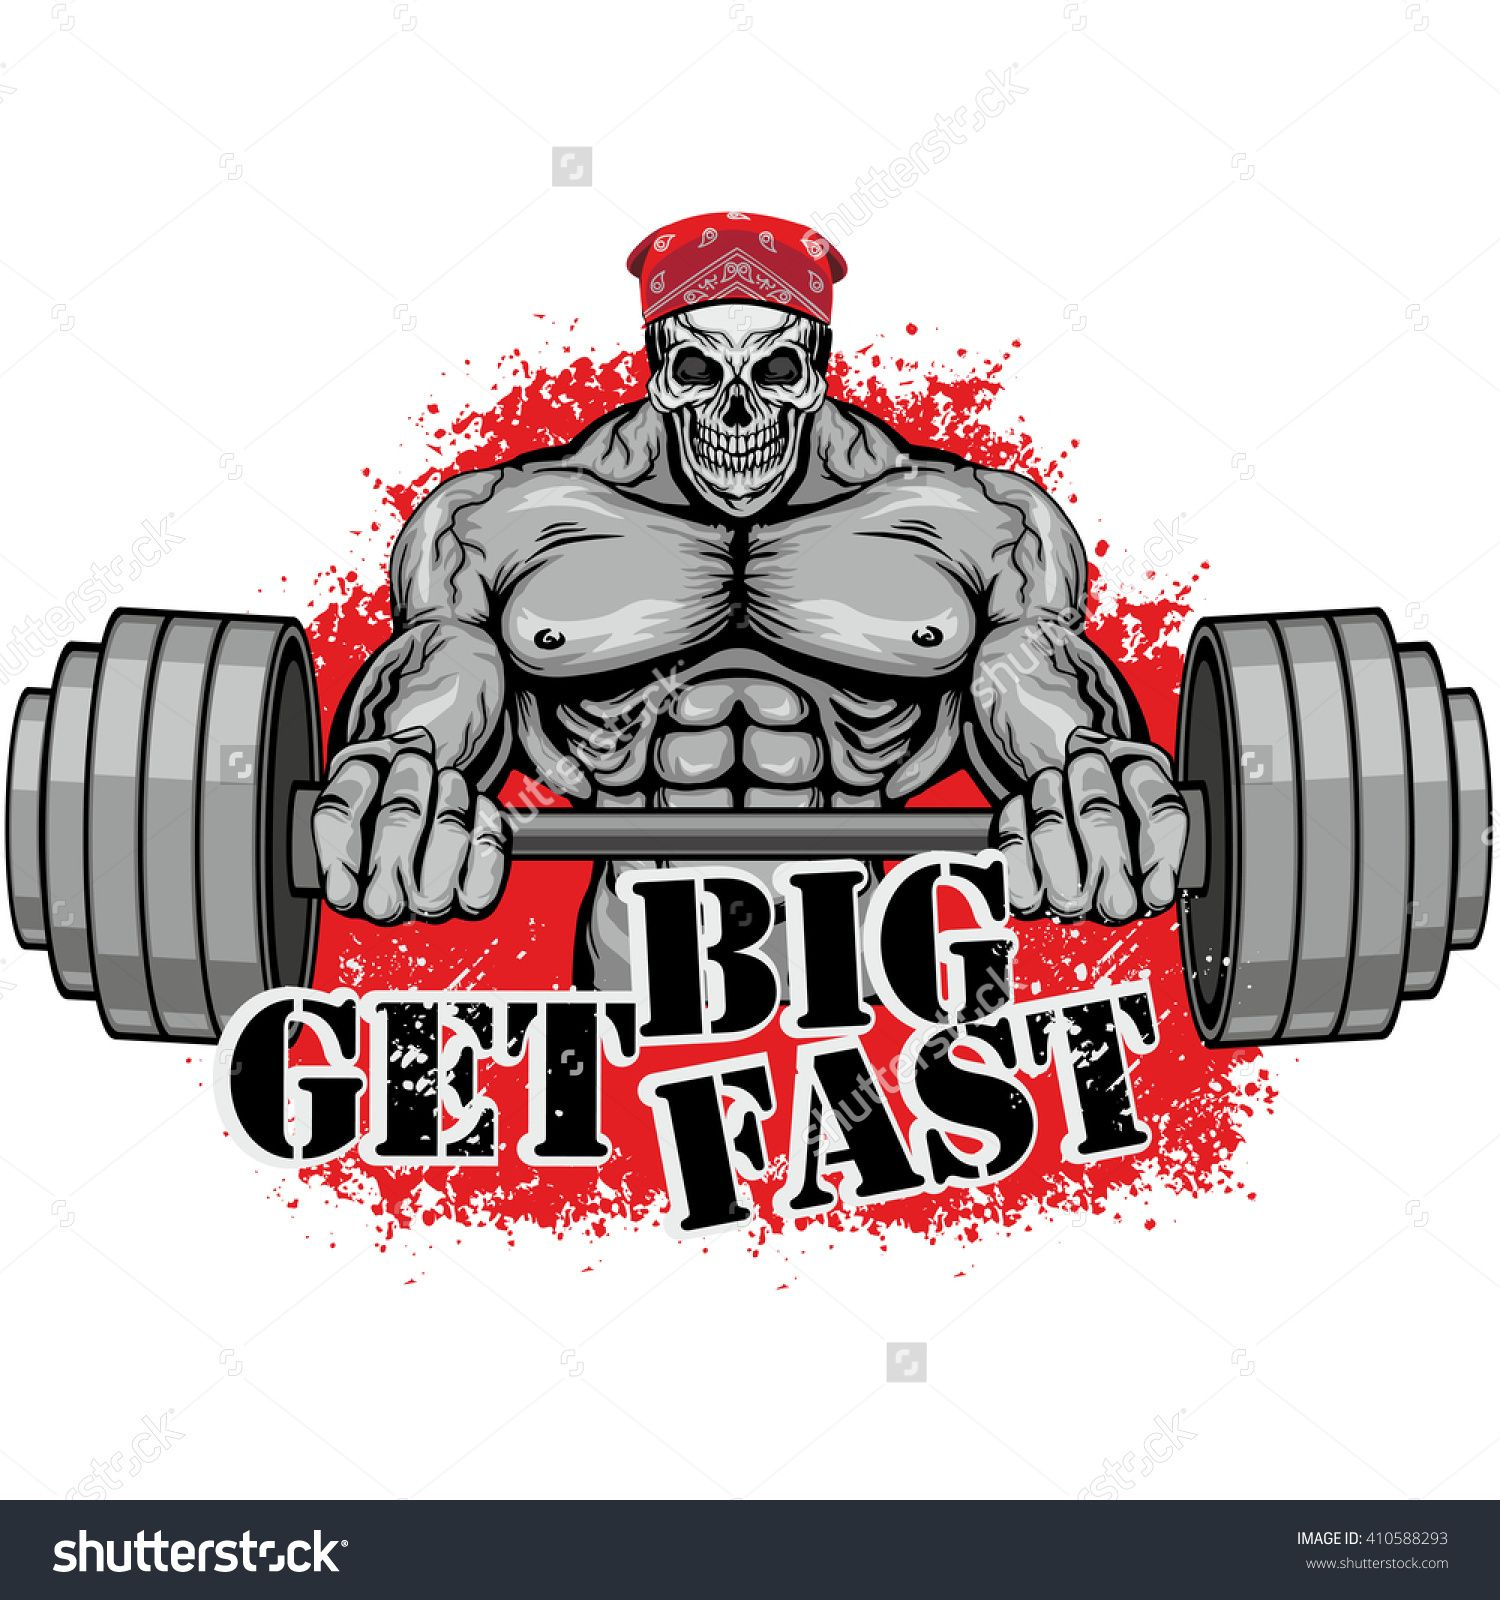 Resultado de imagen de bodybuilding logos graphic design | Ideas ... for Bodybuilding Graphic Design  56mzq